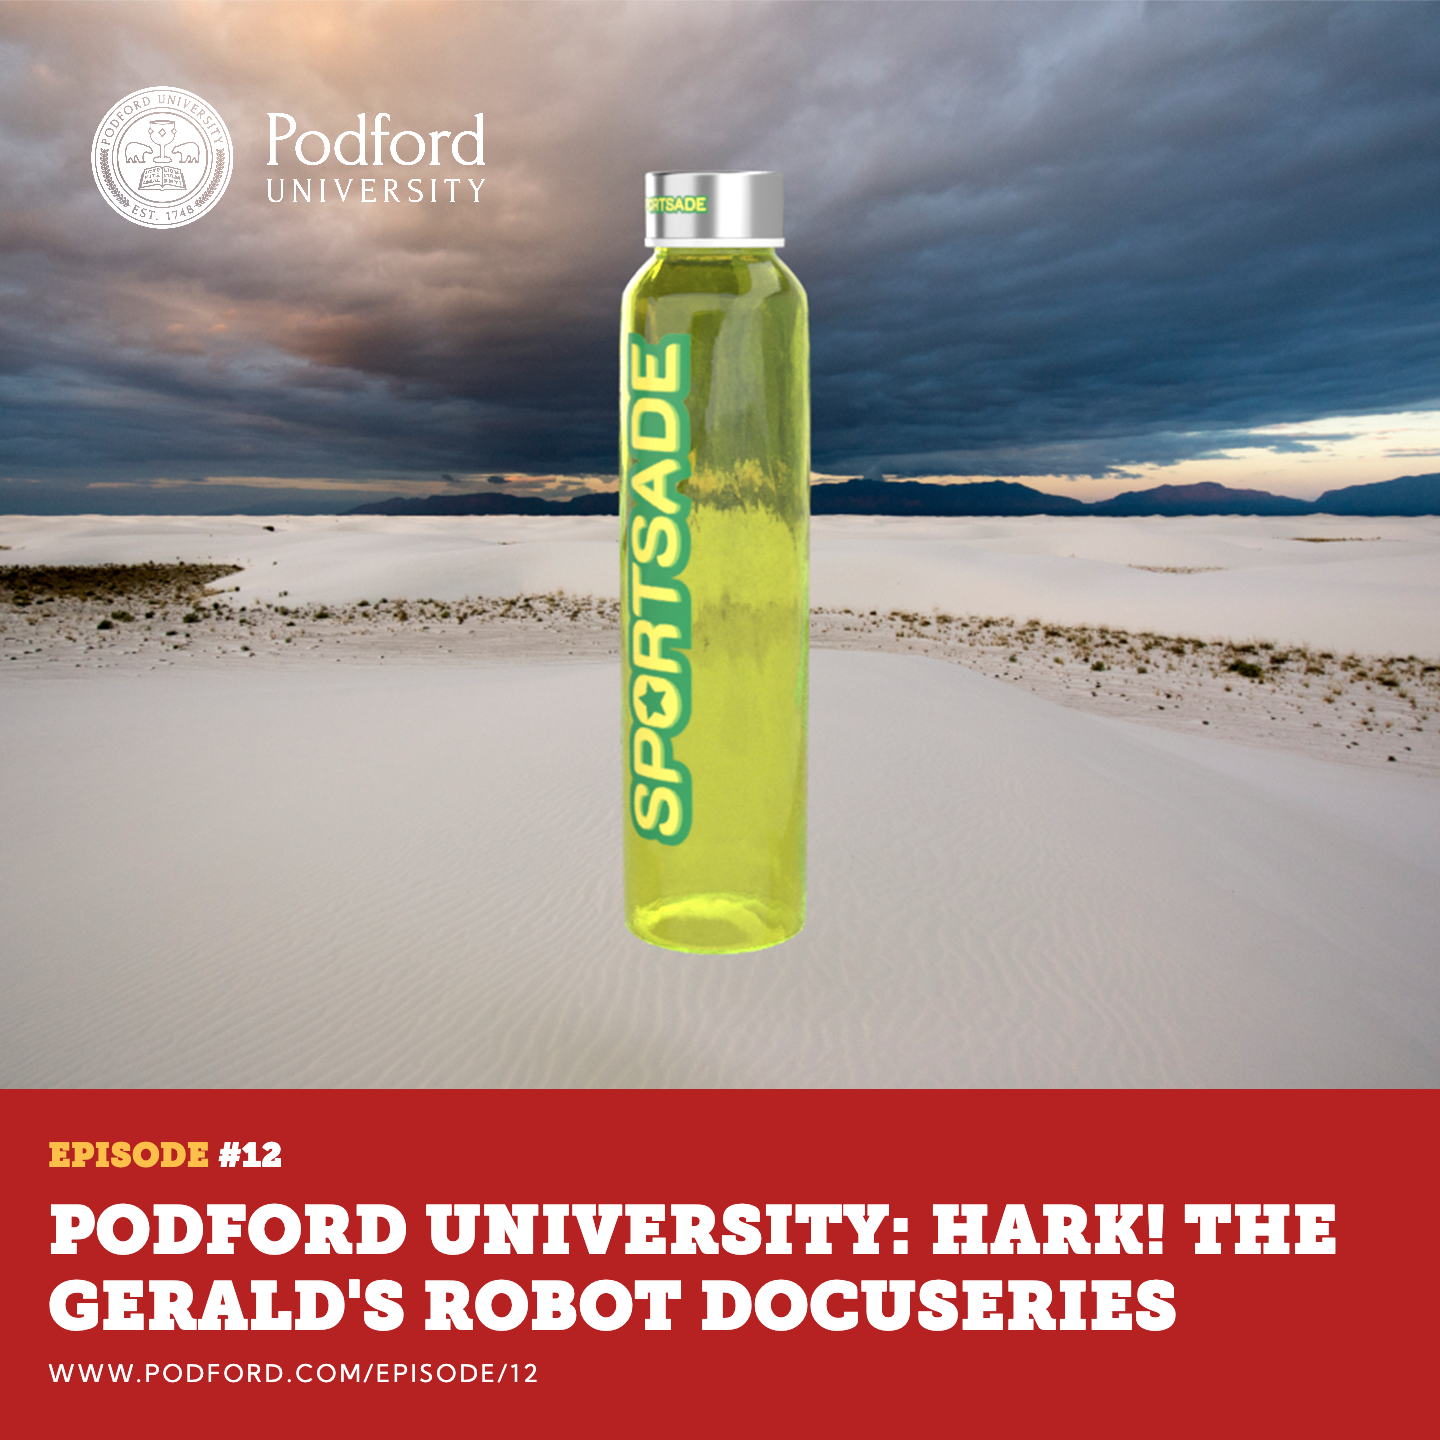 Podford University: Hark! The Gerald's Robot Docuseries